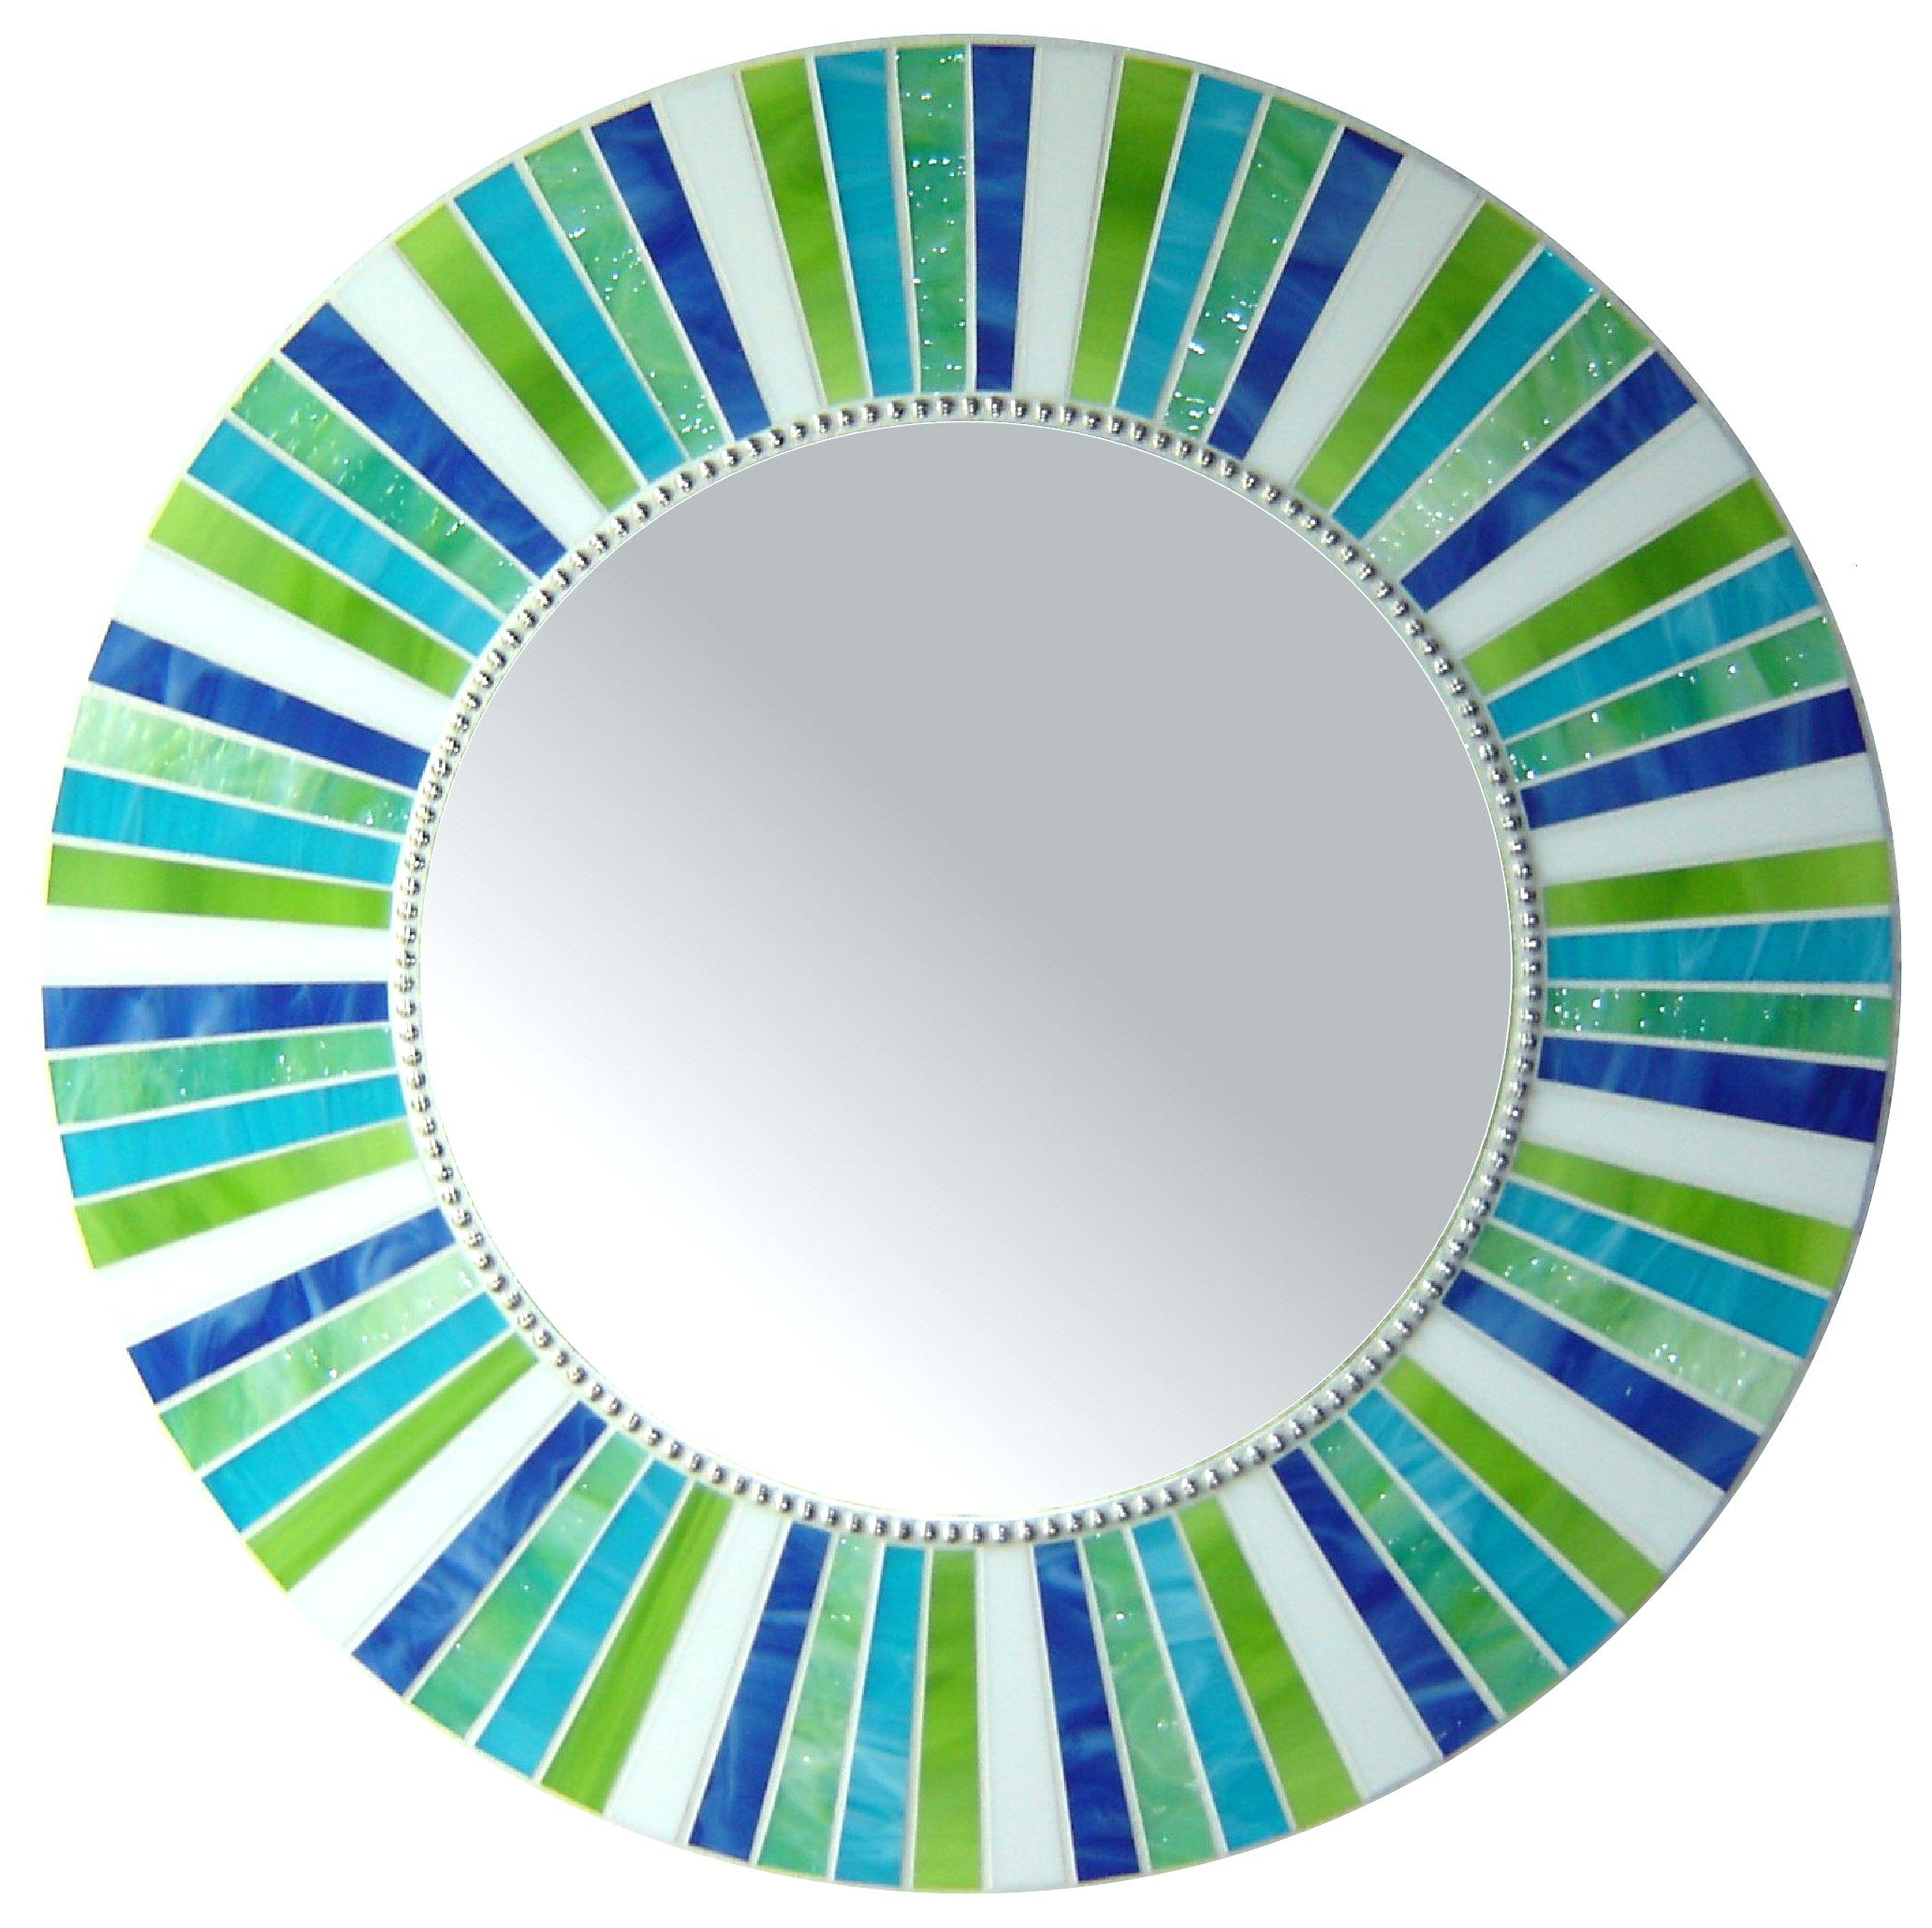 Round Mosaic Mirrors Uk Mirror Shopwiz Intended For Mosaic Mirrors For Sale (Image 14 of 15)